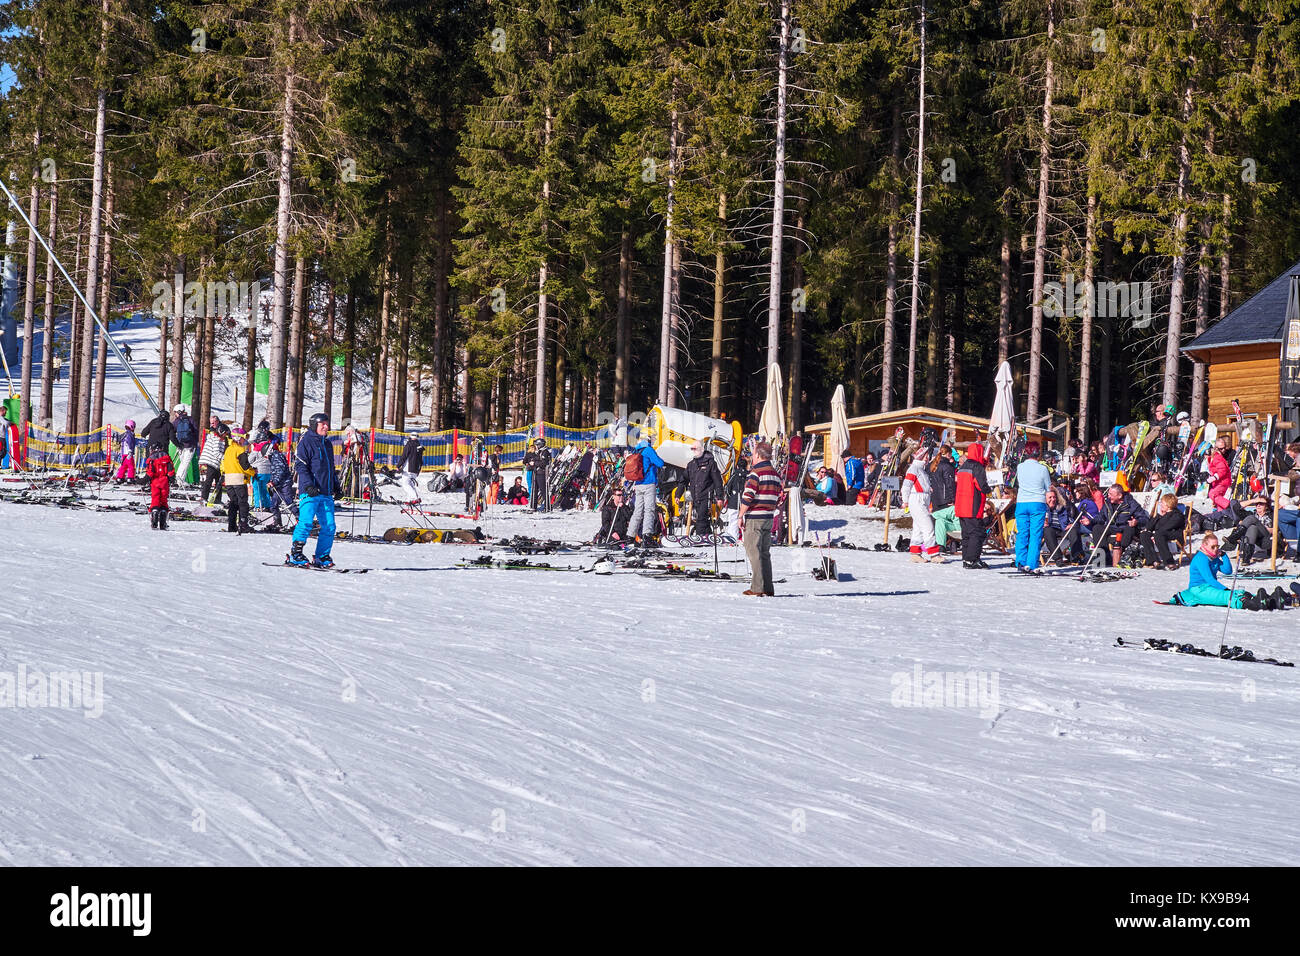 WINTERBERG, GERMANY - FEBRUARY 15, 2017: Large group of people taking a break at Ski Carousel Winterberg - Stock Image